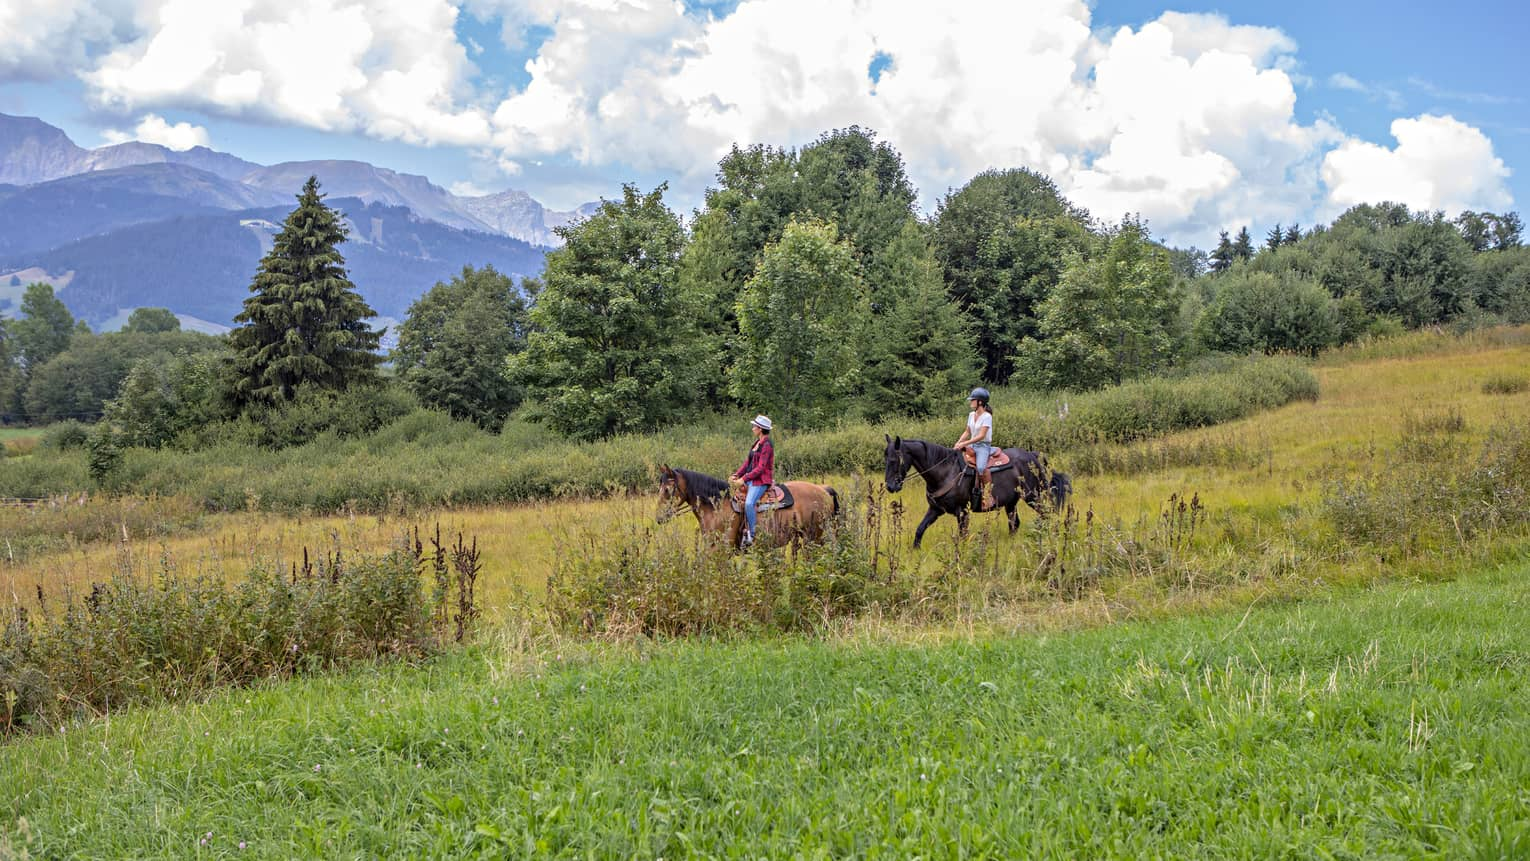 Two people horseback riding on green mountainside in French Alps